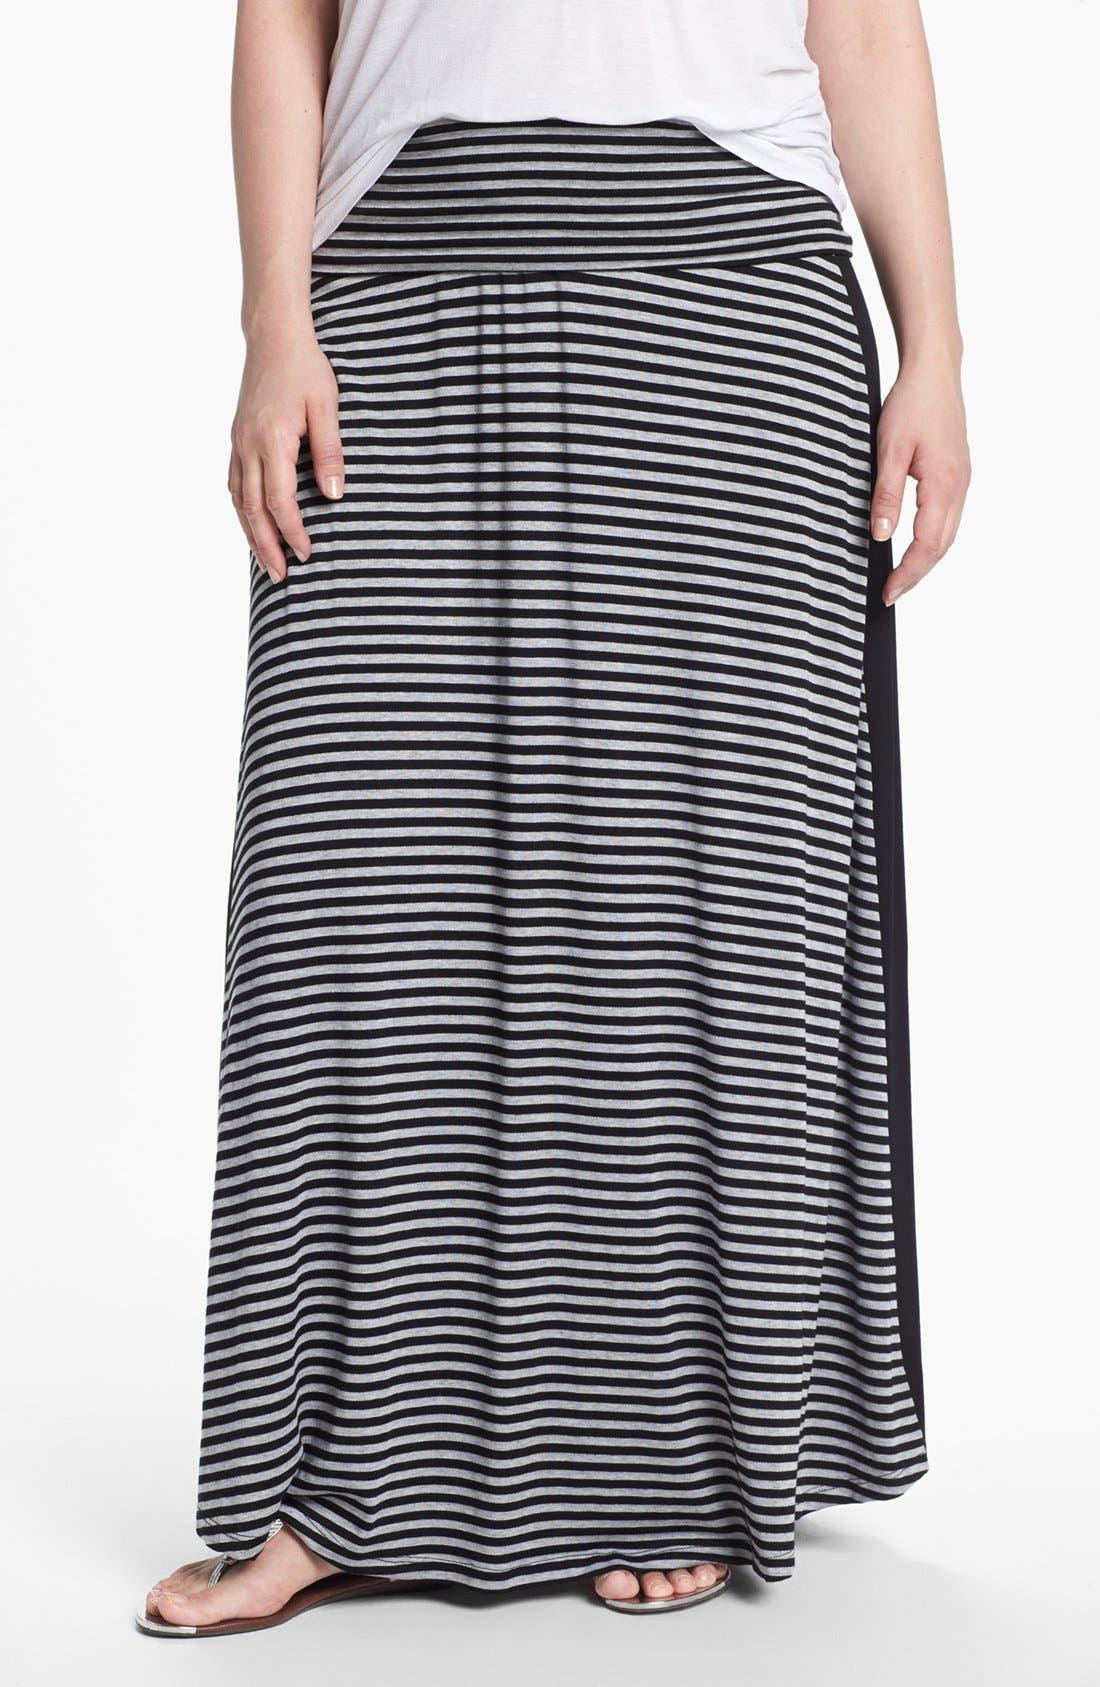 Alternate Image 1 Selected - Bobeau Tuxedo Stripe Maxi Skirt (Plus Size)